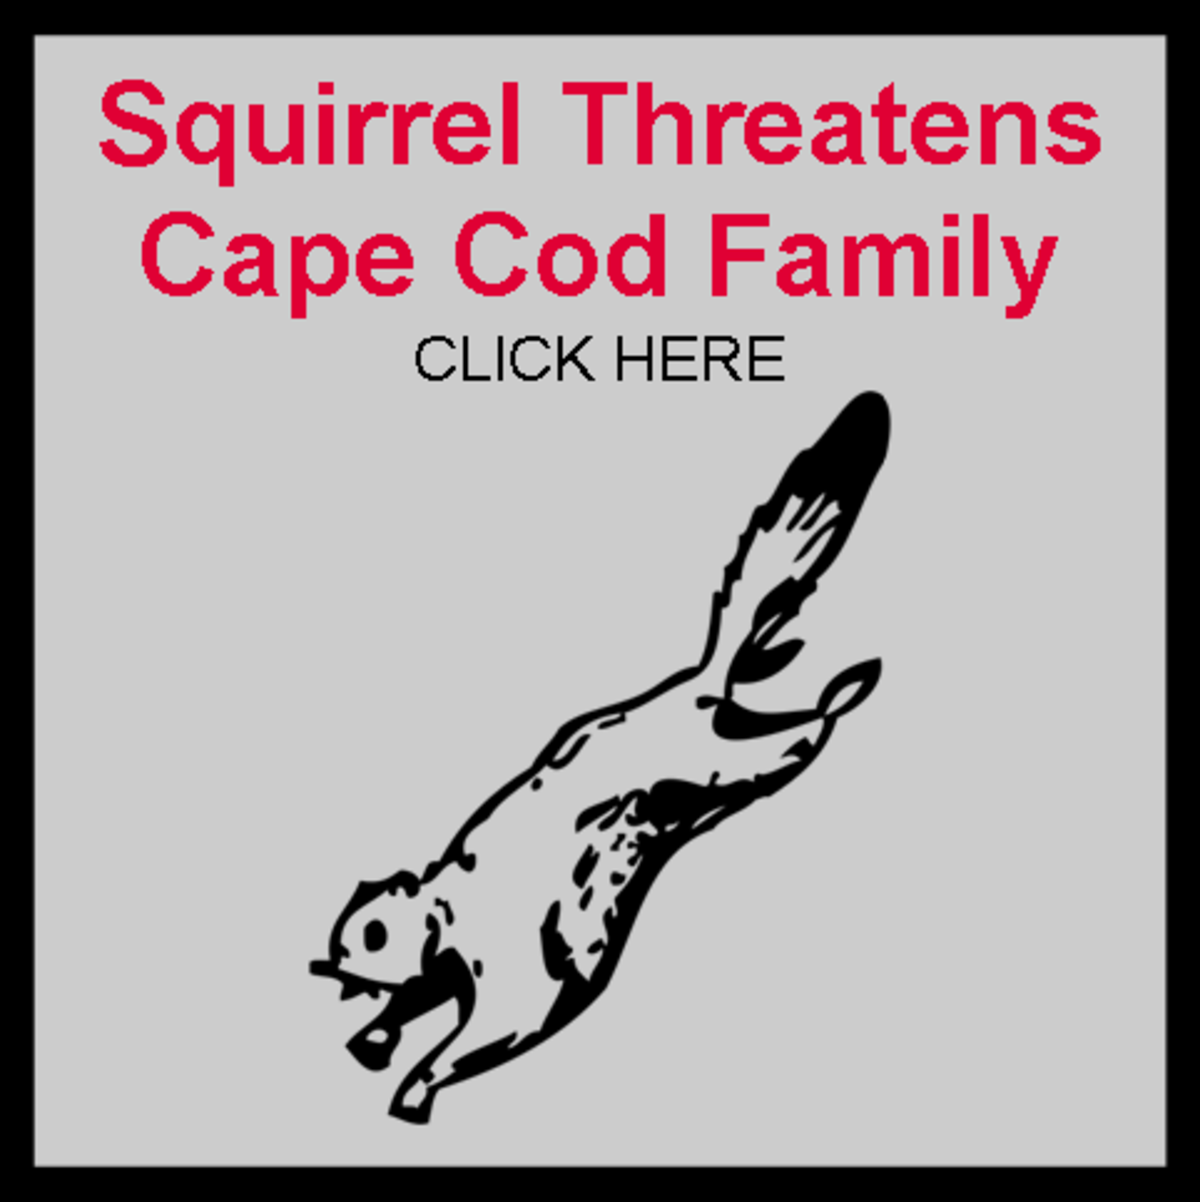 Squirrel Threatens Cape Cod Family